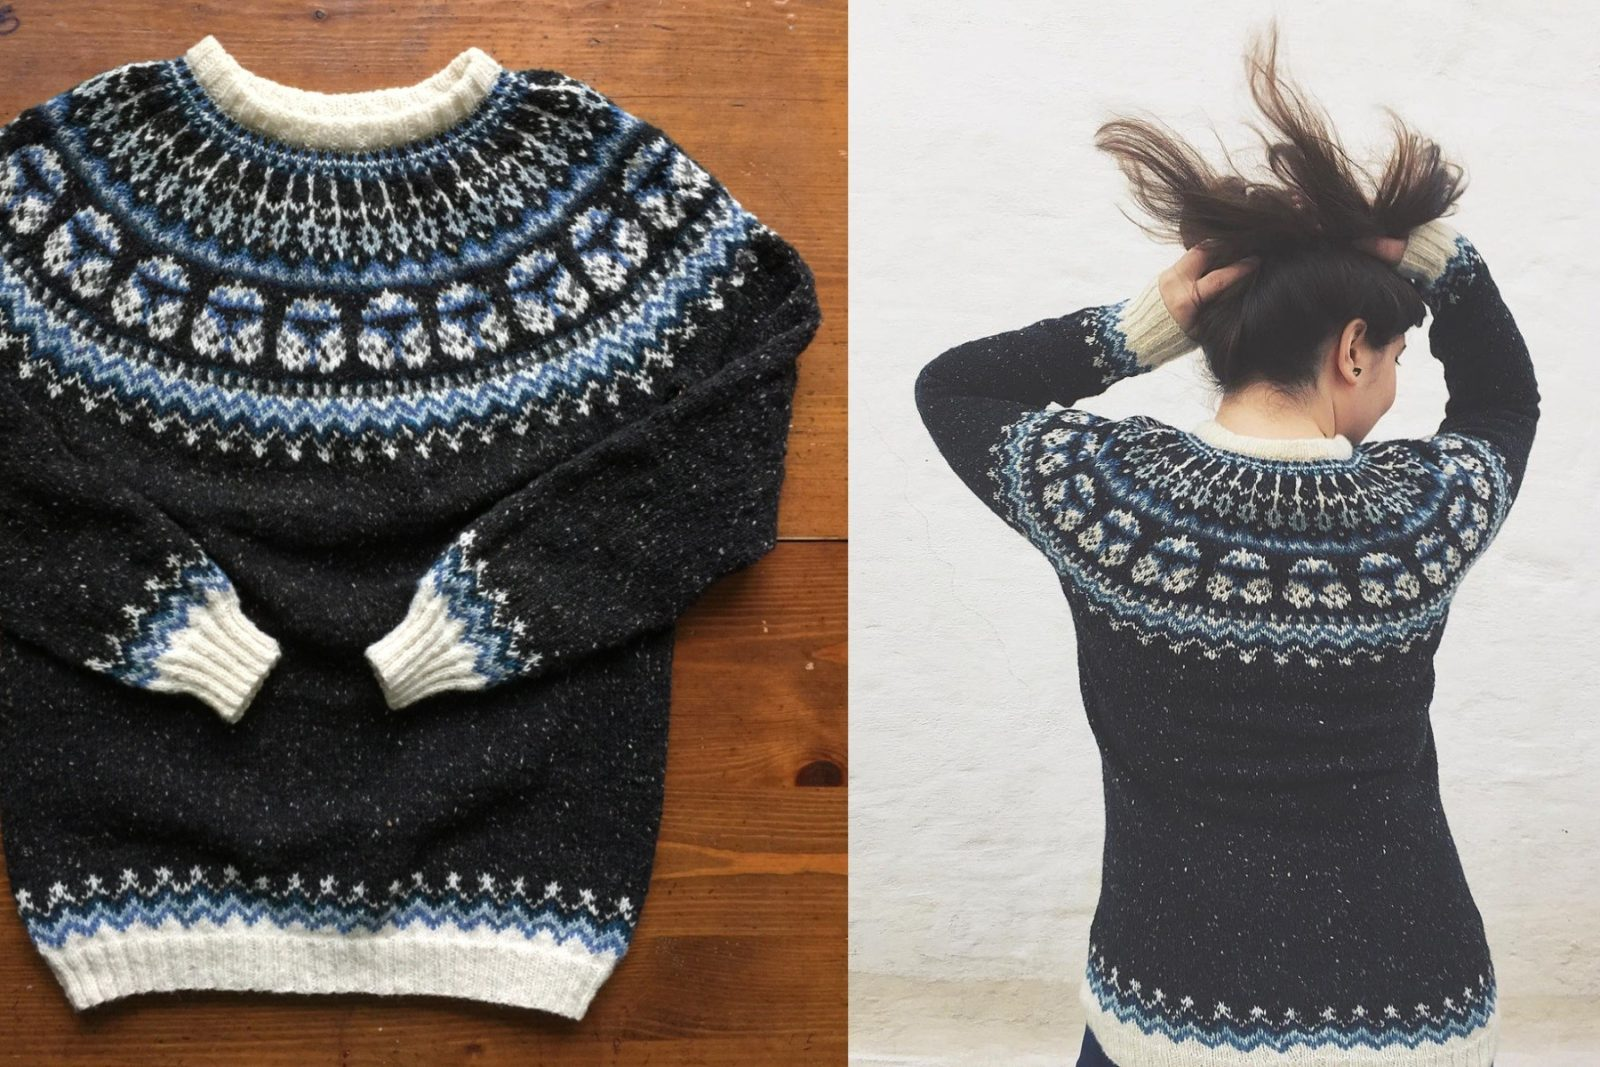 Star Wars sweaters by Natela Datura Design